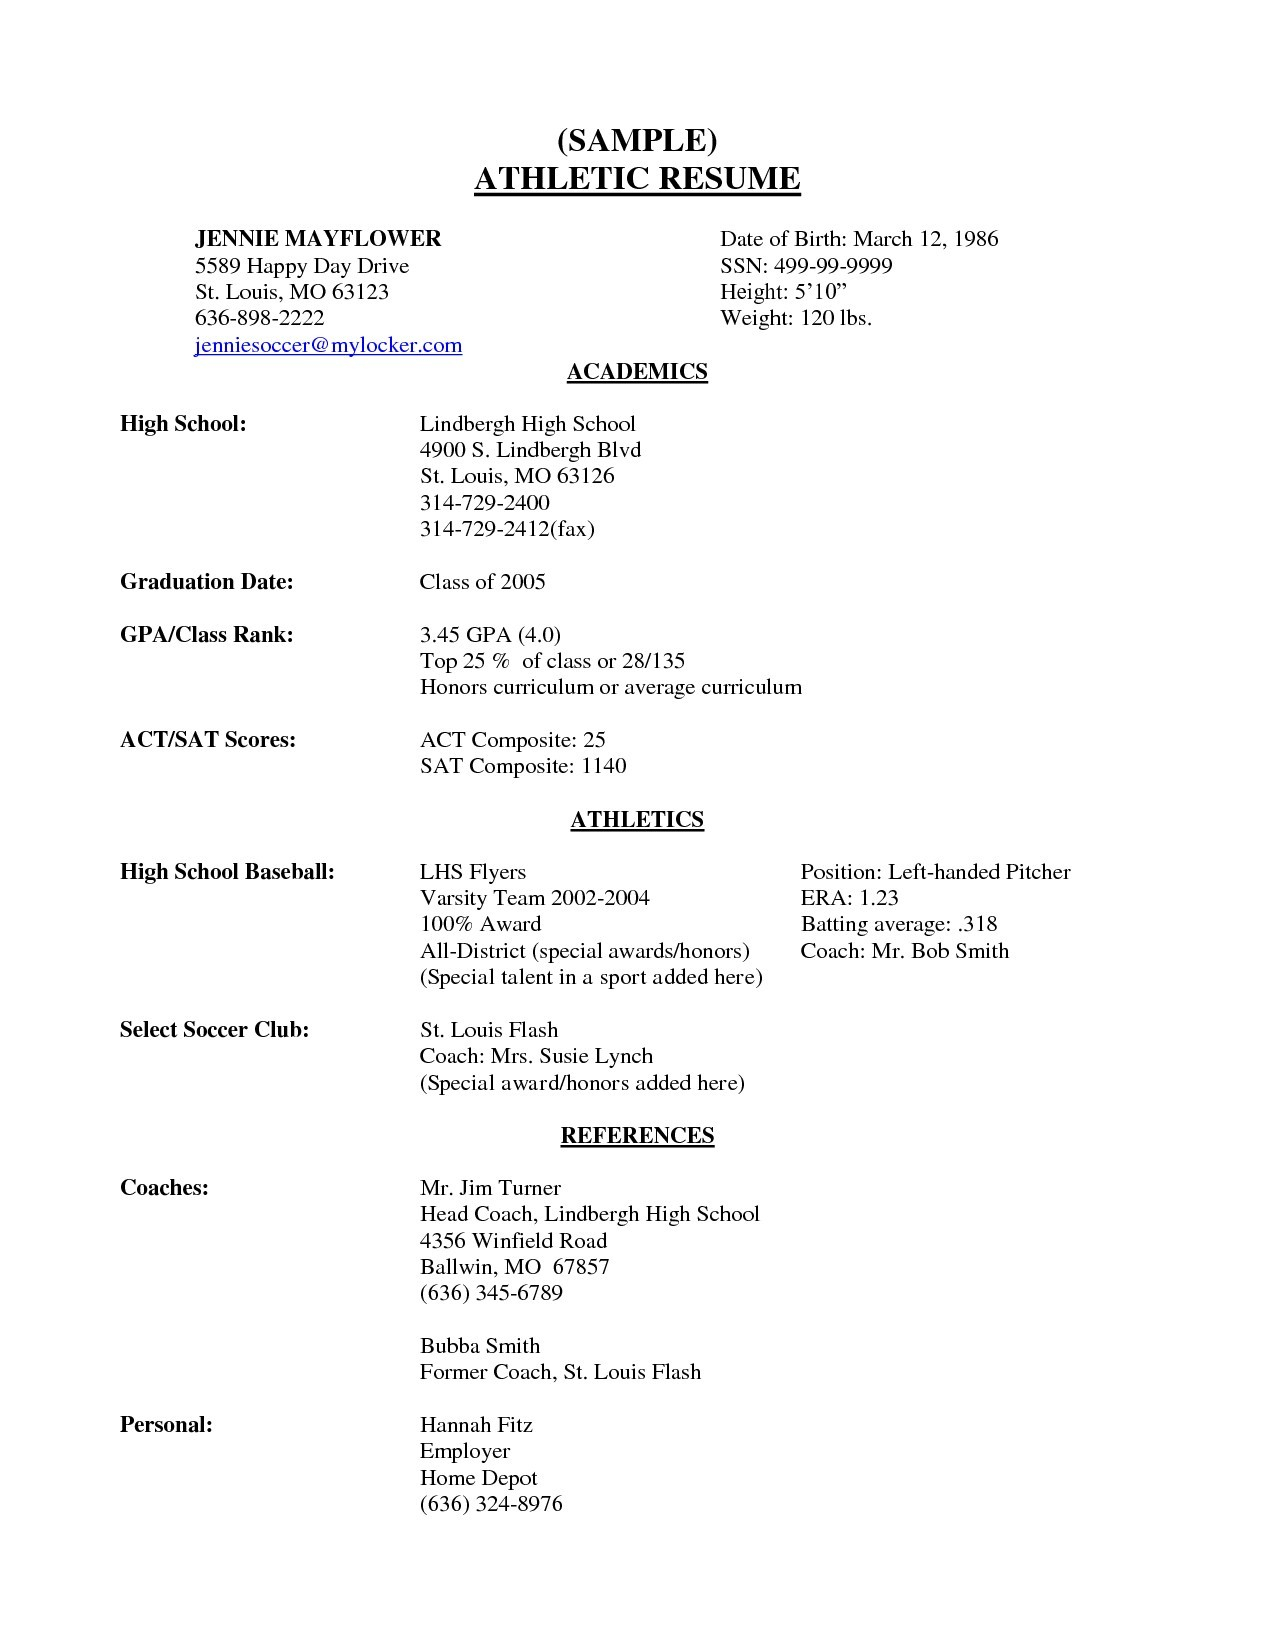 Athlete Resume Template - Resume Templates for High School Students Valid High School Student